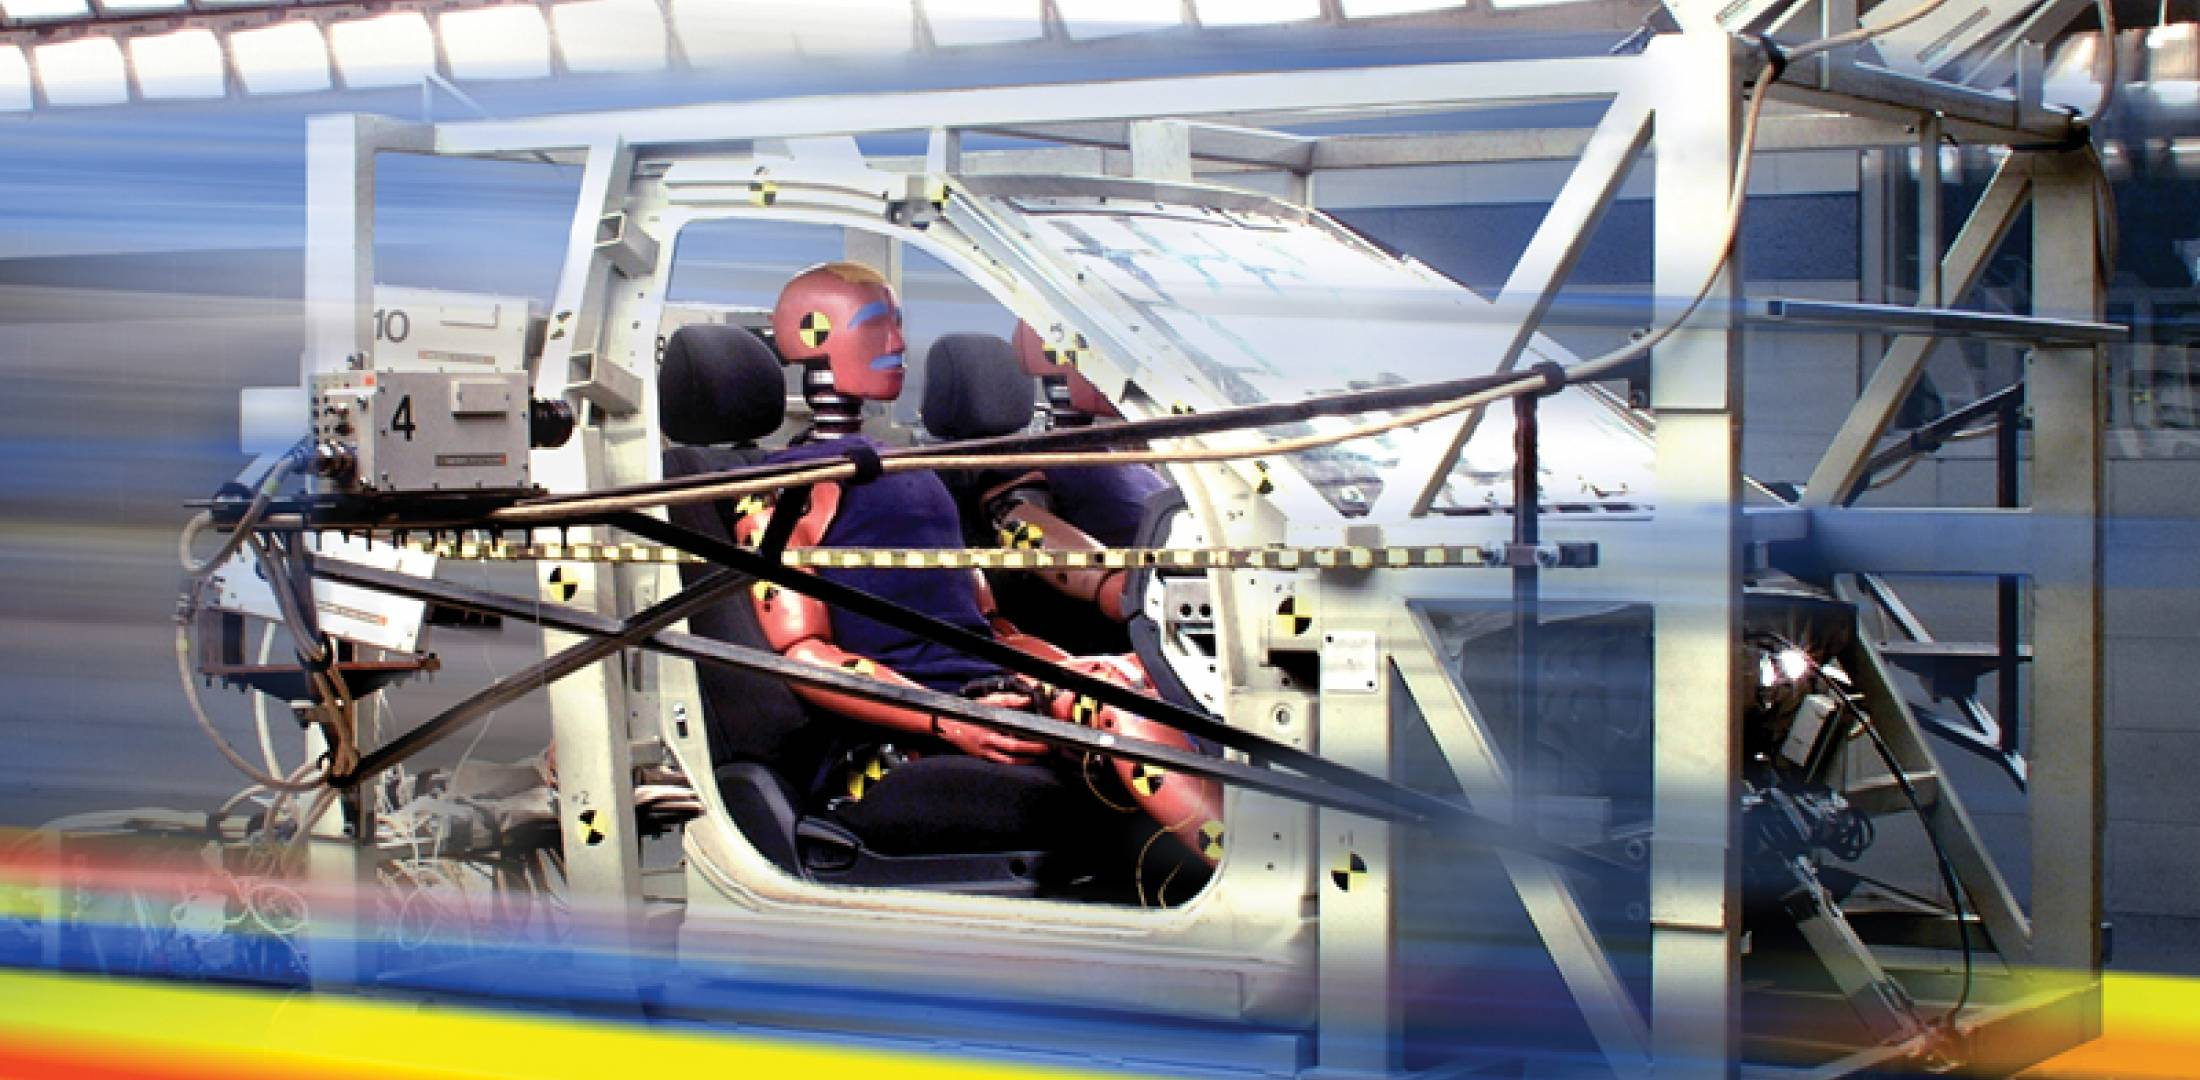 Aviation Occupant Safety inflatable restraint systems in development